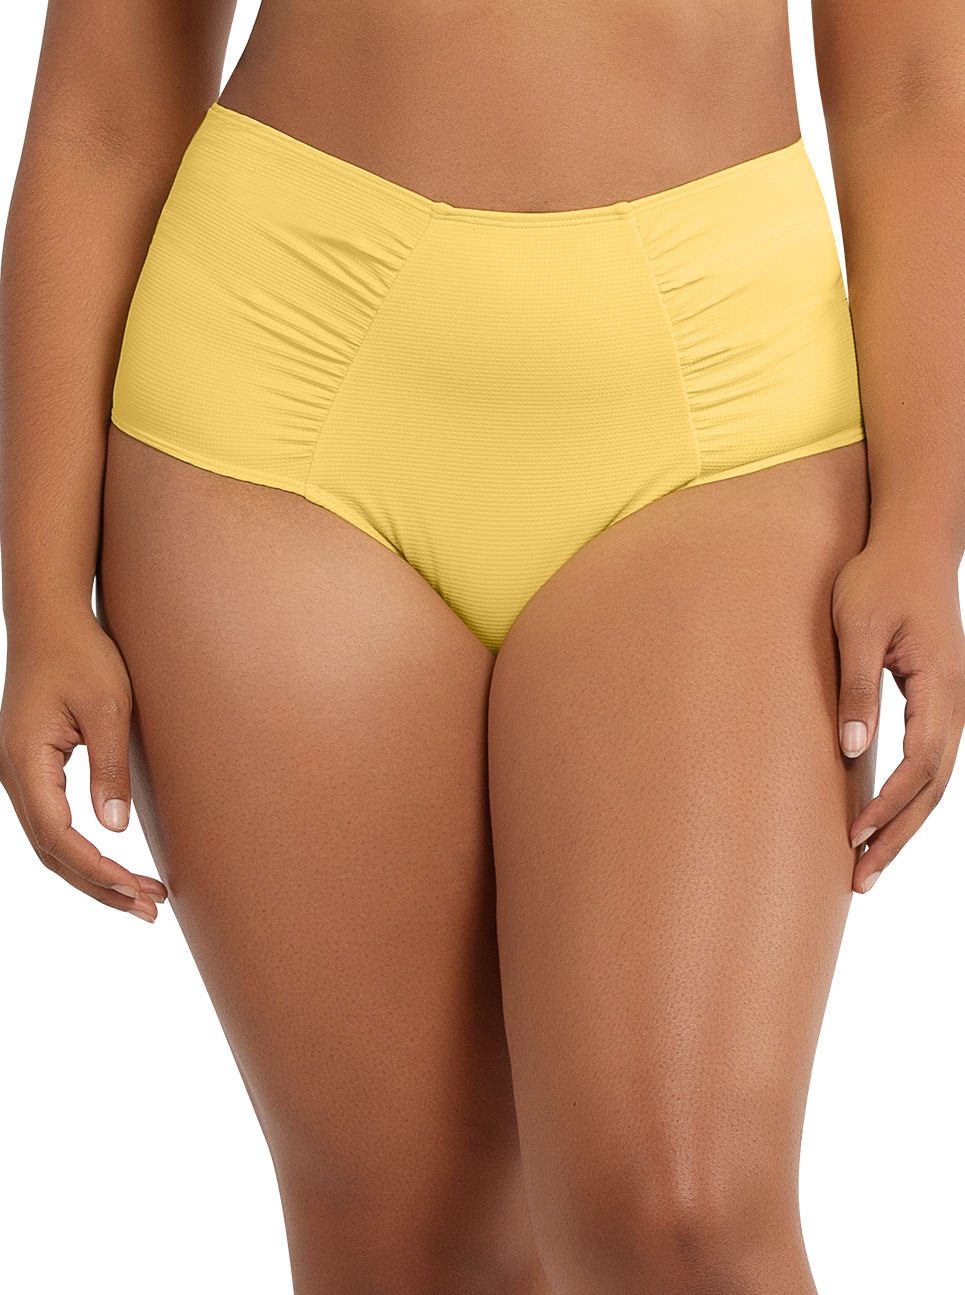 PARFAIT Vivien HighwaistedBottomS8165 LemonDrop Front - Vivien Highwaisted Bottom Lemon Drop S8165